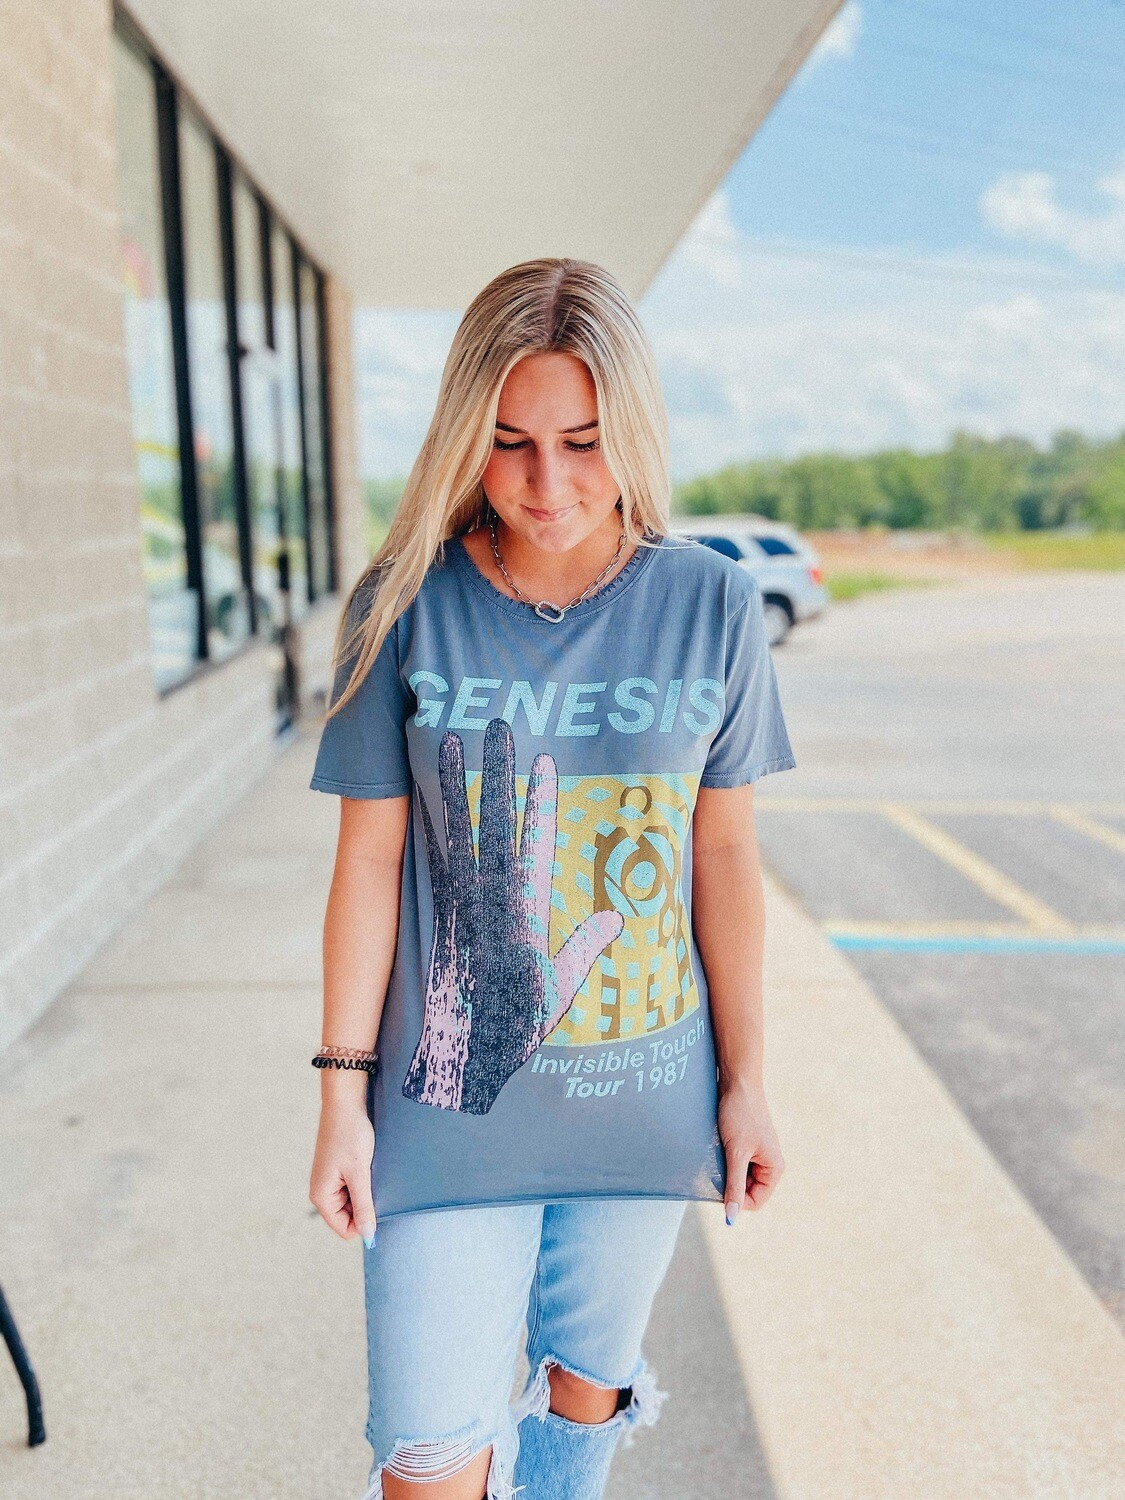 Genesis invisible Touch Tour Tee